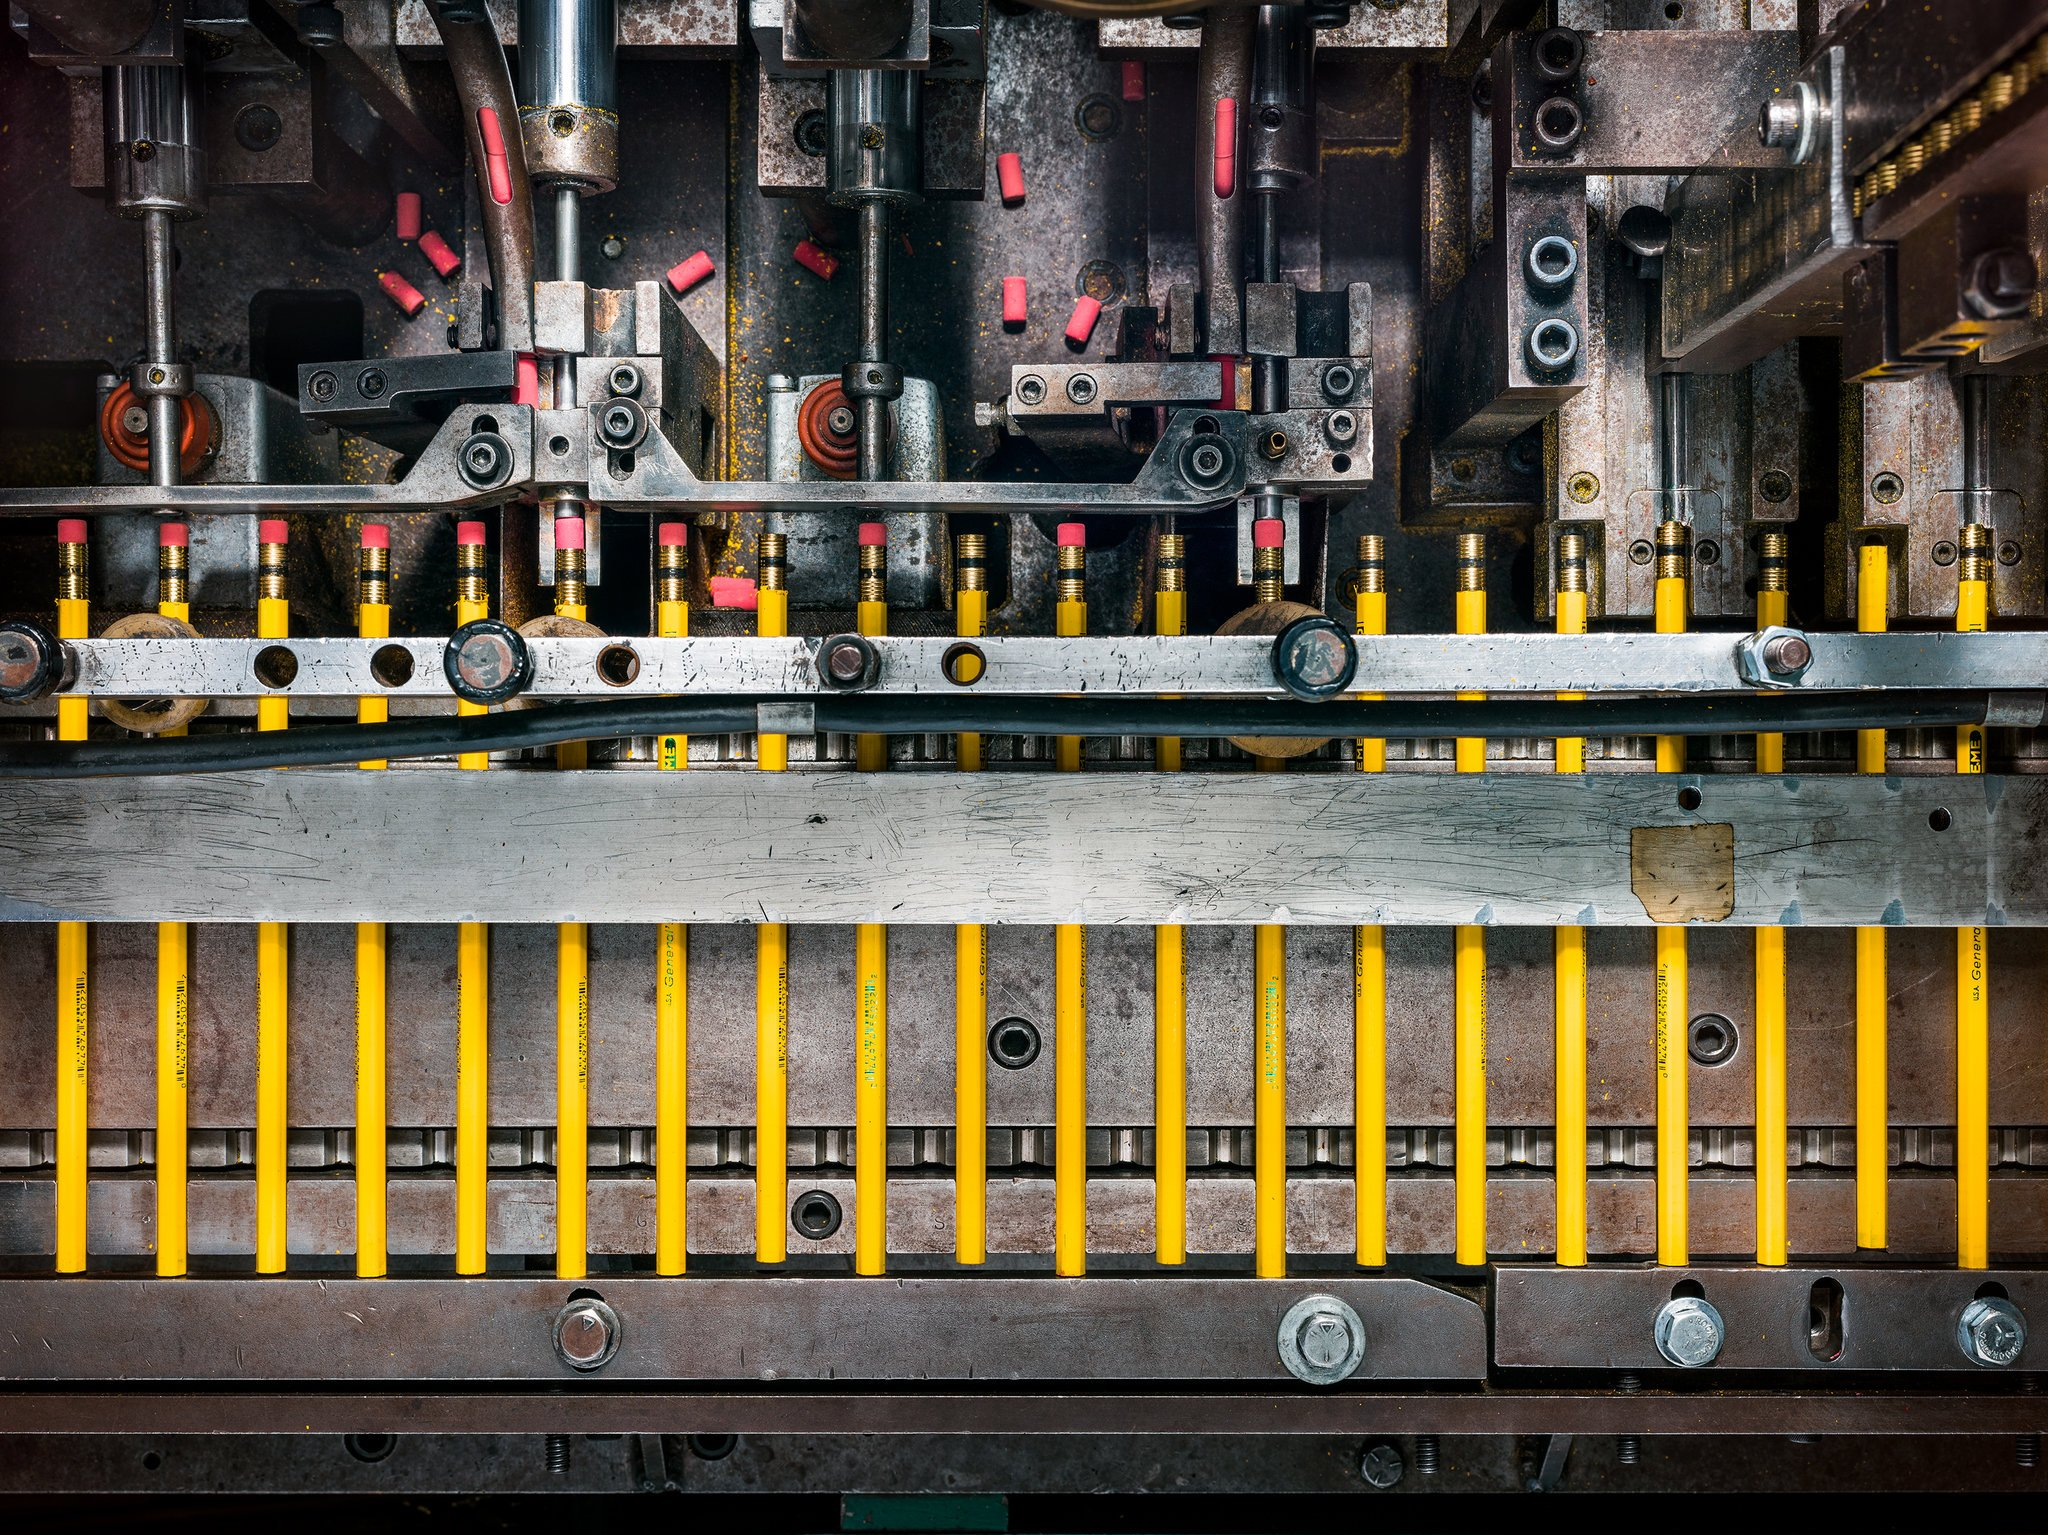 14mag pencil23 superJumbo - Inside One of America's Last Pencil Factories